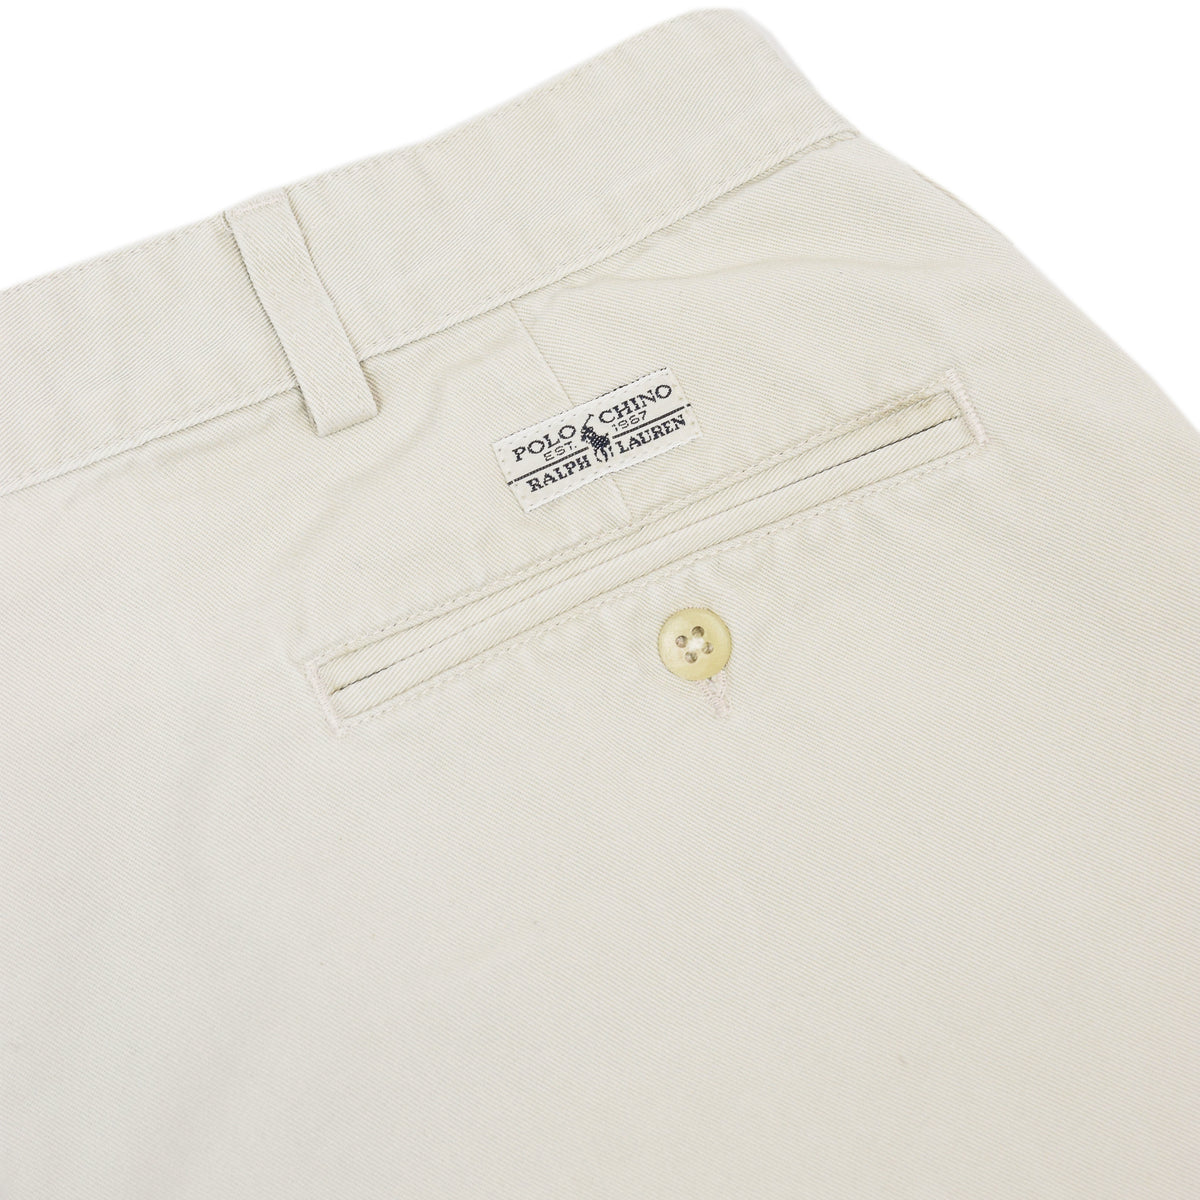 Vintage 80s Polo Ralph Lauren Cotton Double Pleated Front Chino Shorts 34 W back pocket